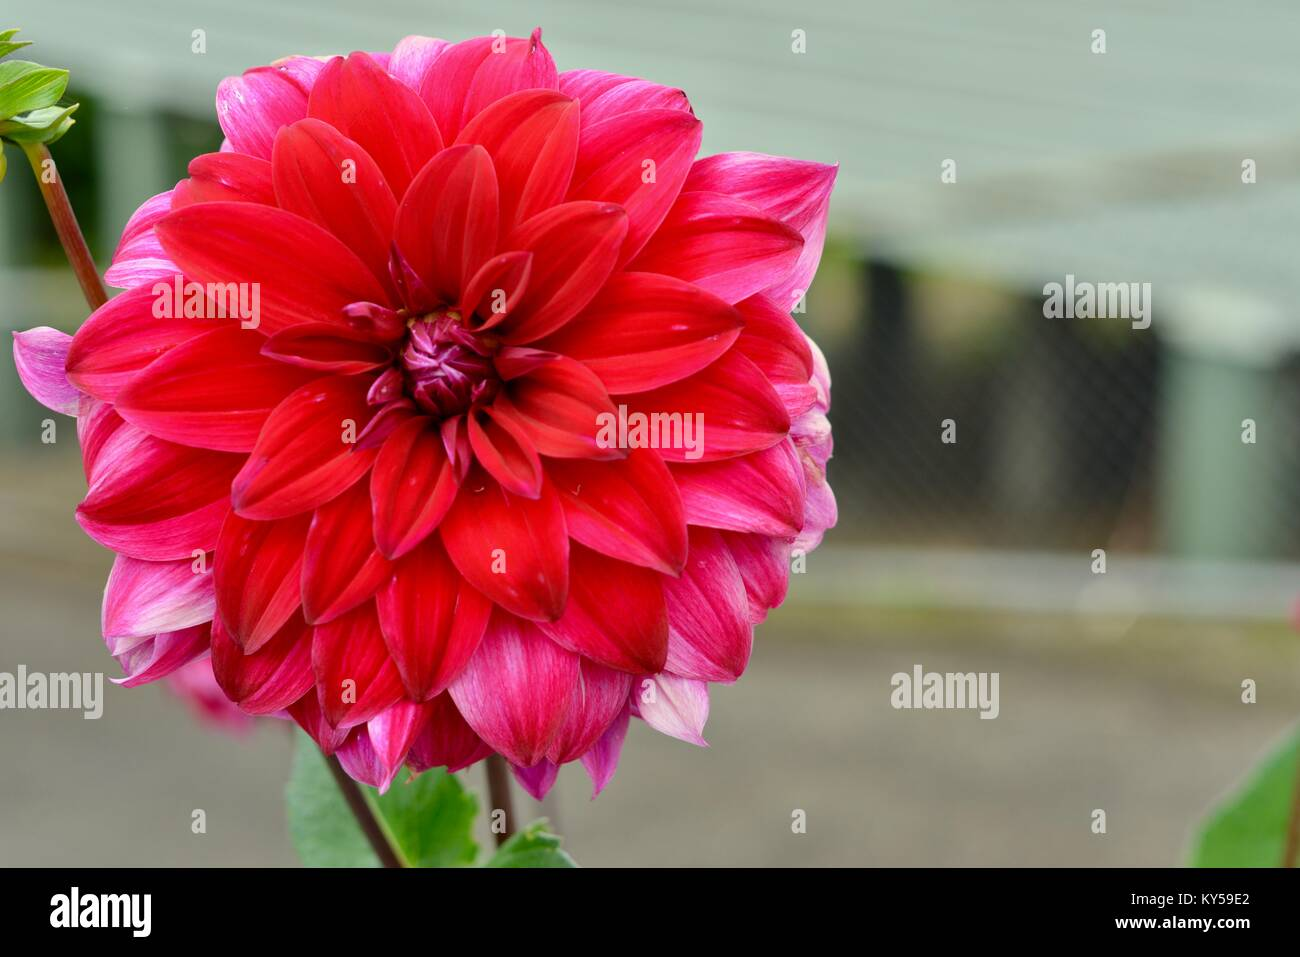 Vibrant large red Dahlia flower in a residential garden, Maleny, Queensland, Australia - Stock Image